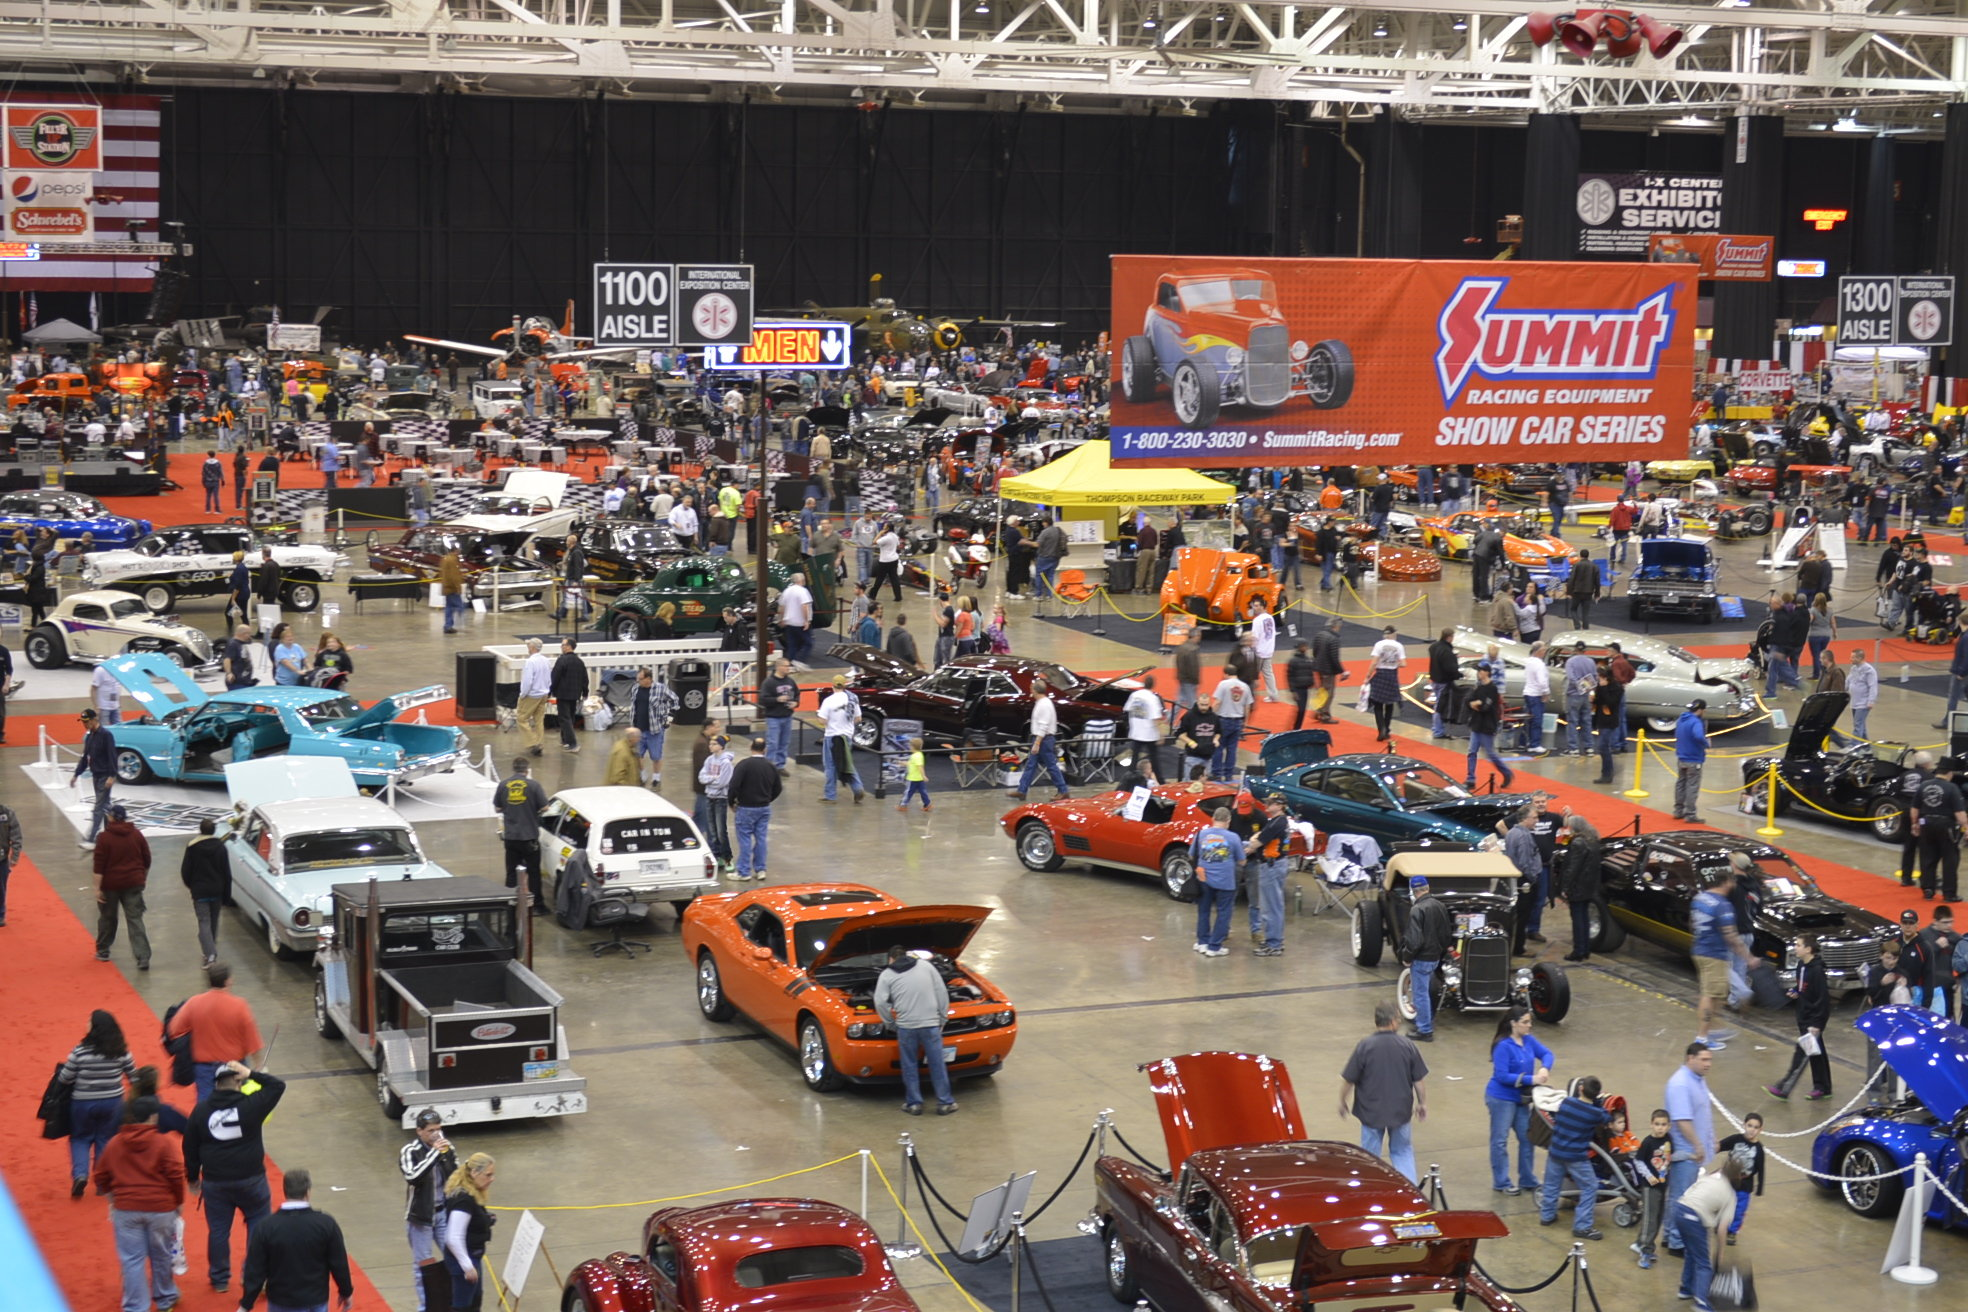 Summit Racing Show Car Series Dates And Locations OnAllCylinders - Car show convention center pittsburgh pa